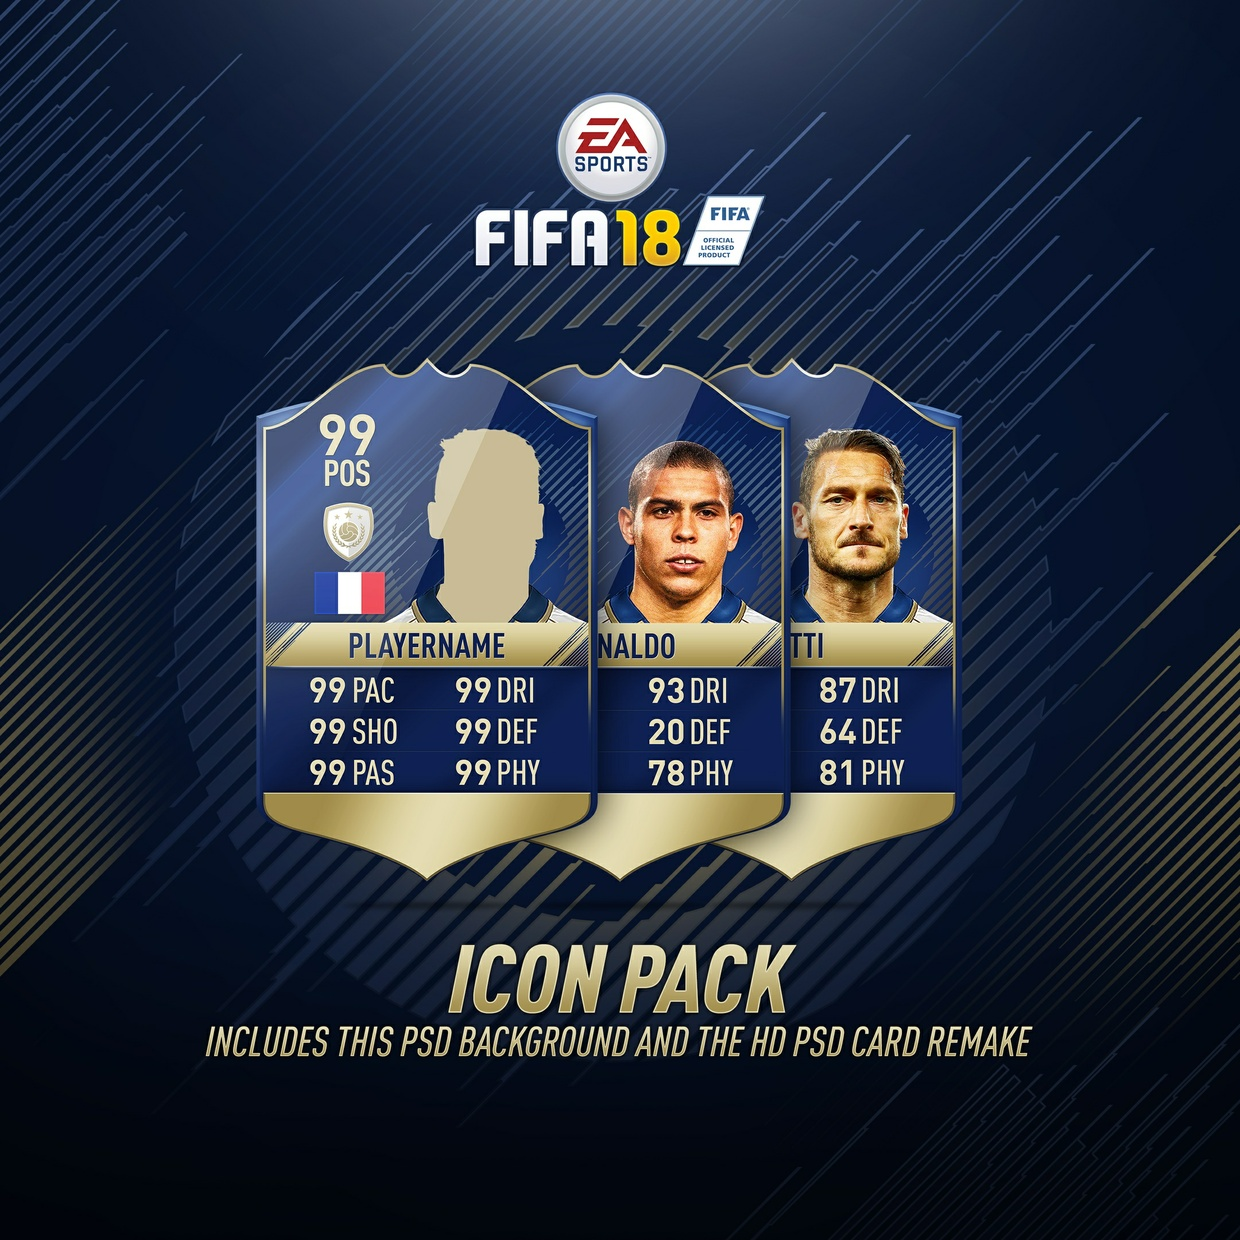 FIFA 18 Card+Background ultra HD and PSD